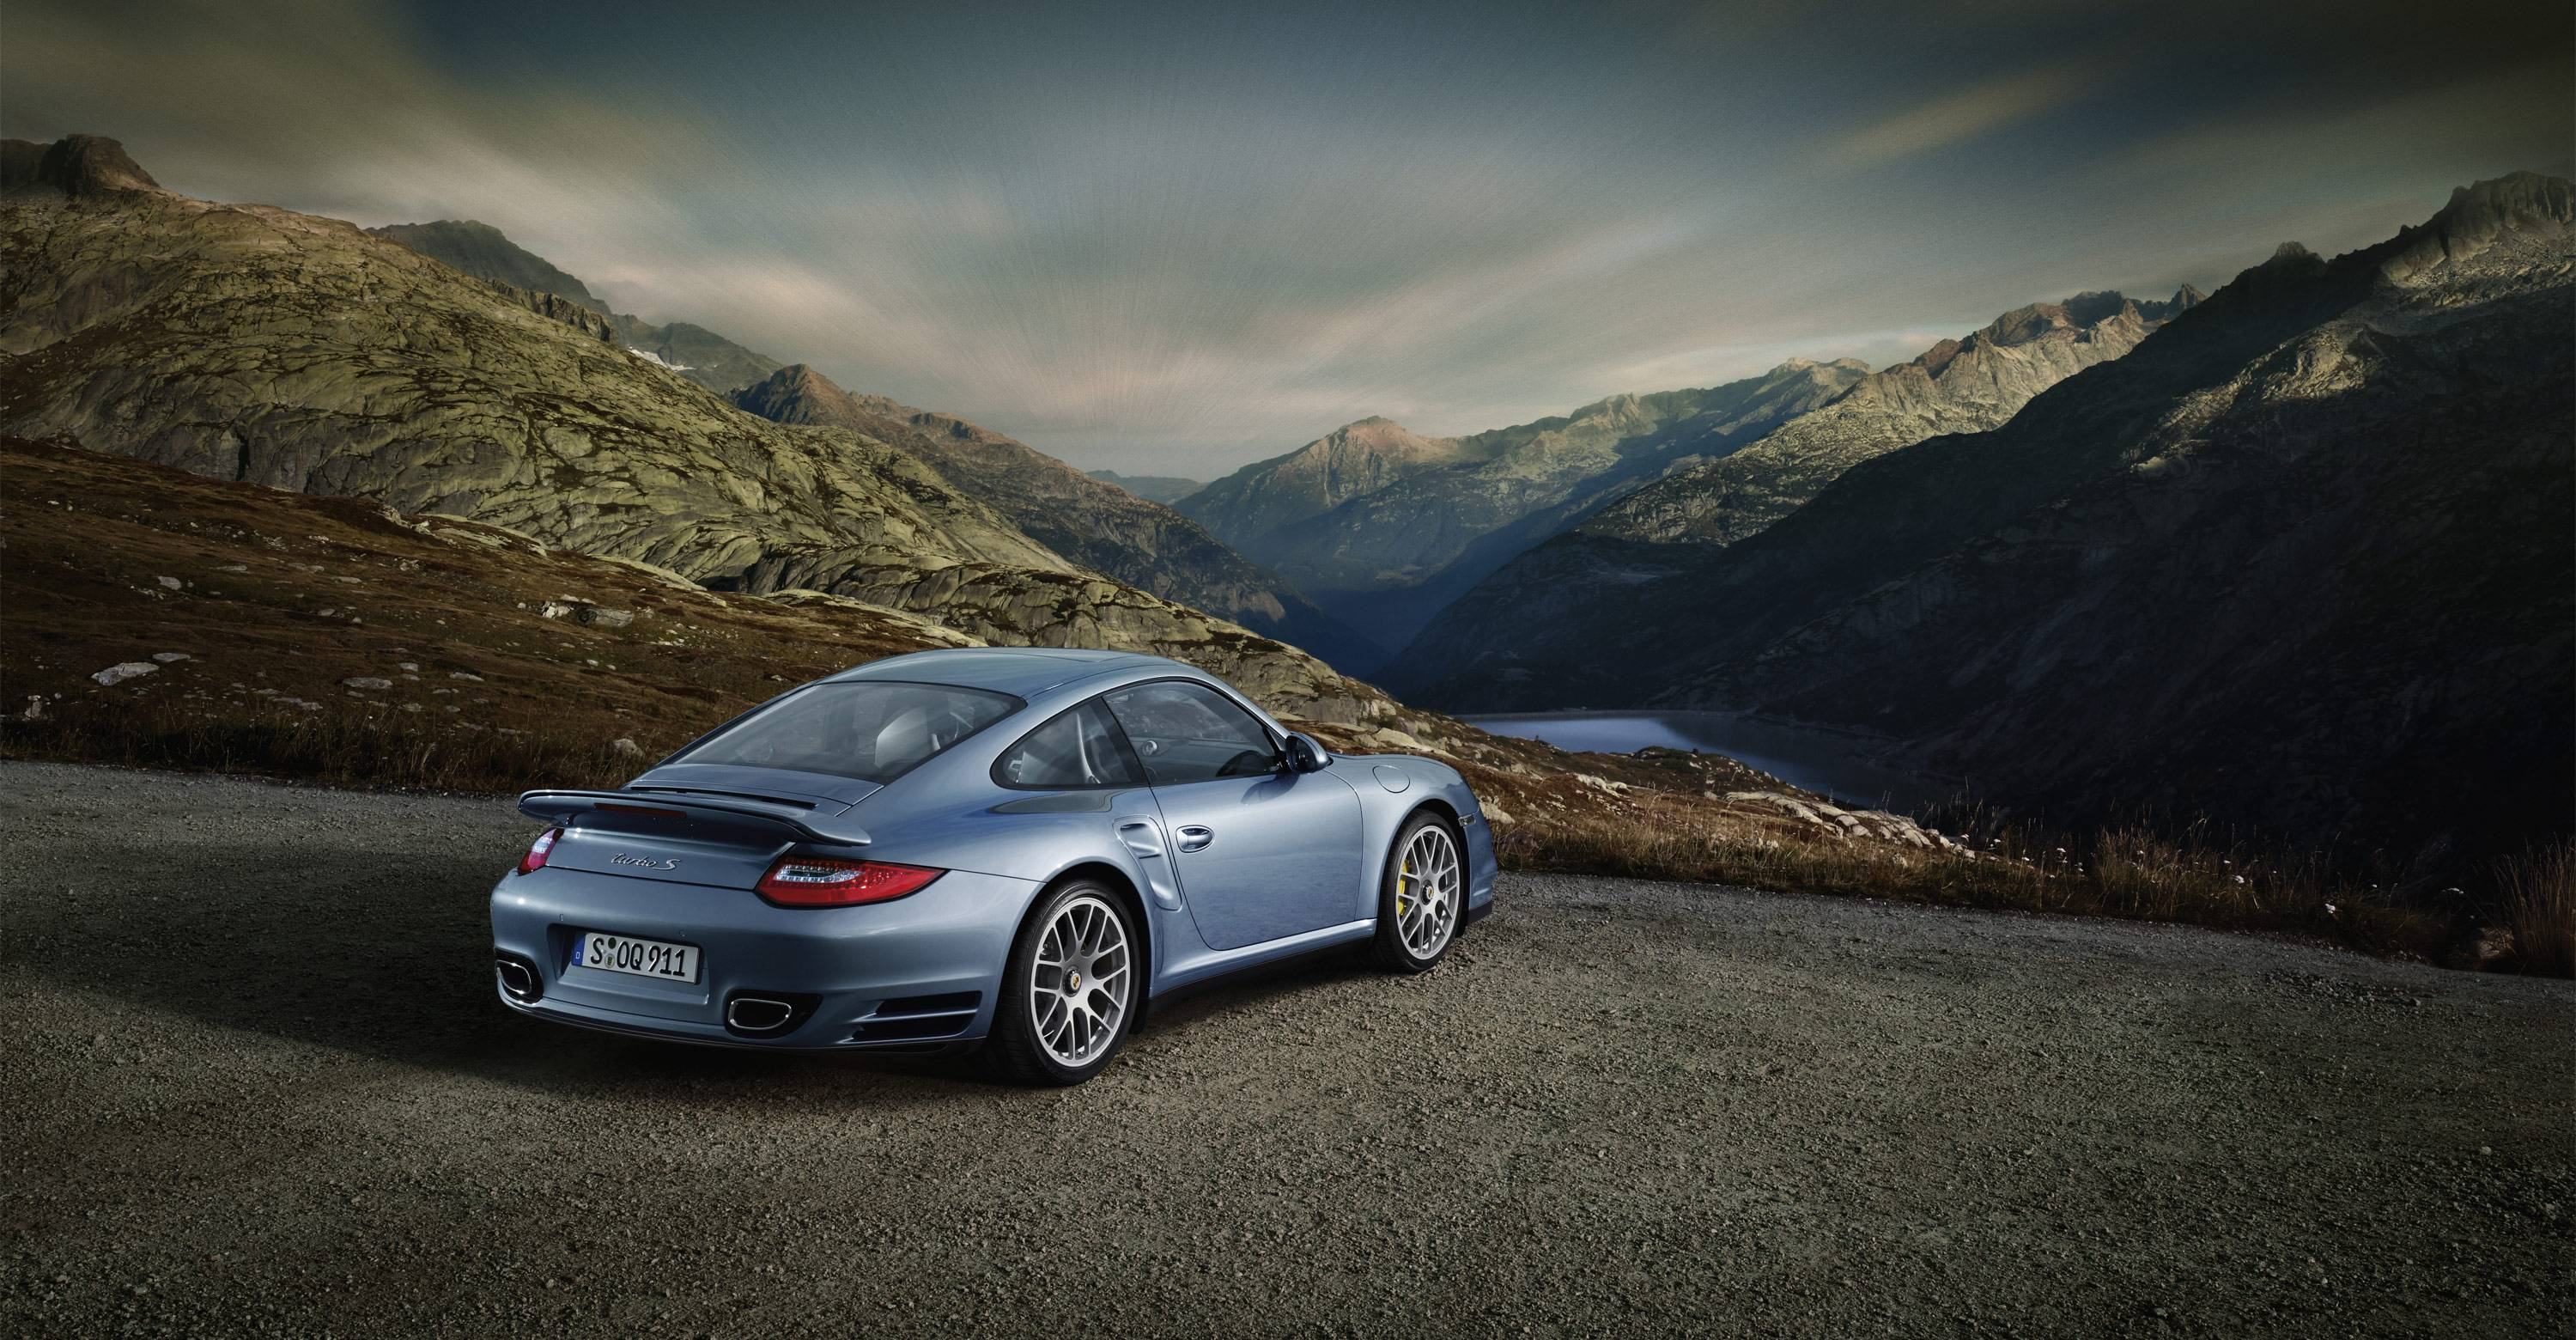 Porsche 911 Wallpapers 3000x1560